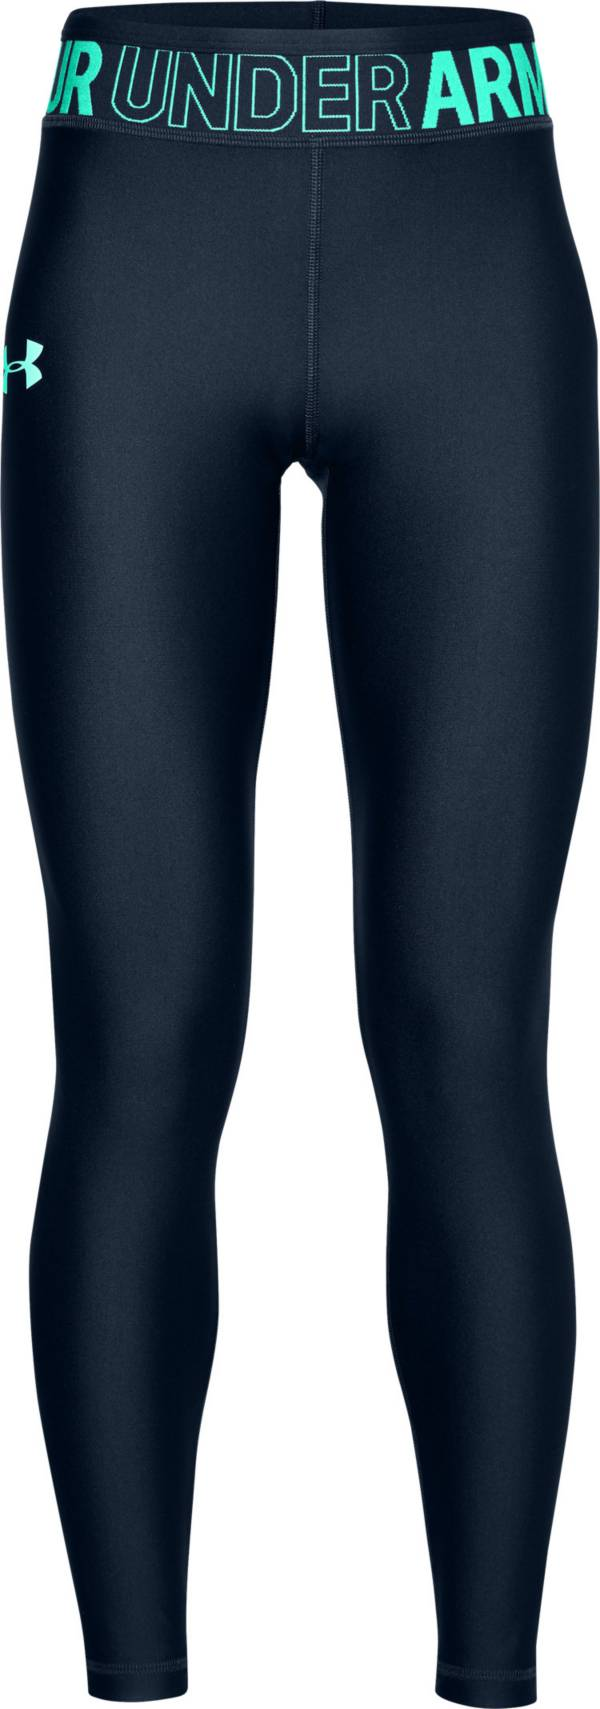 Under Armour Girls' HeatGear Armour Leggings product image